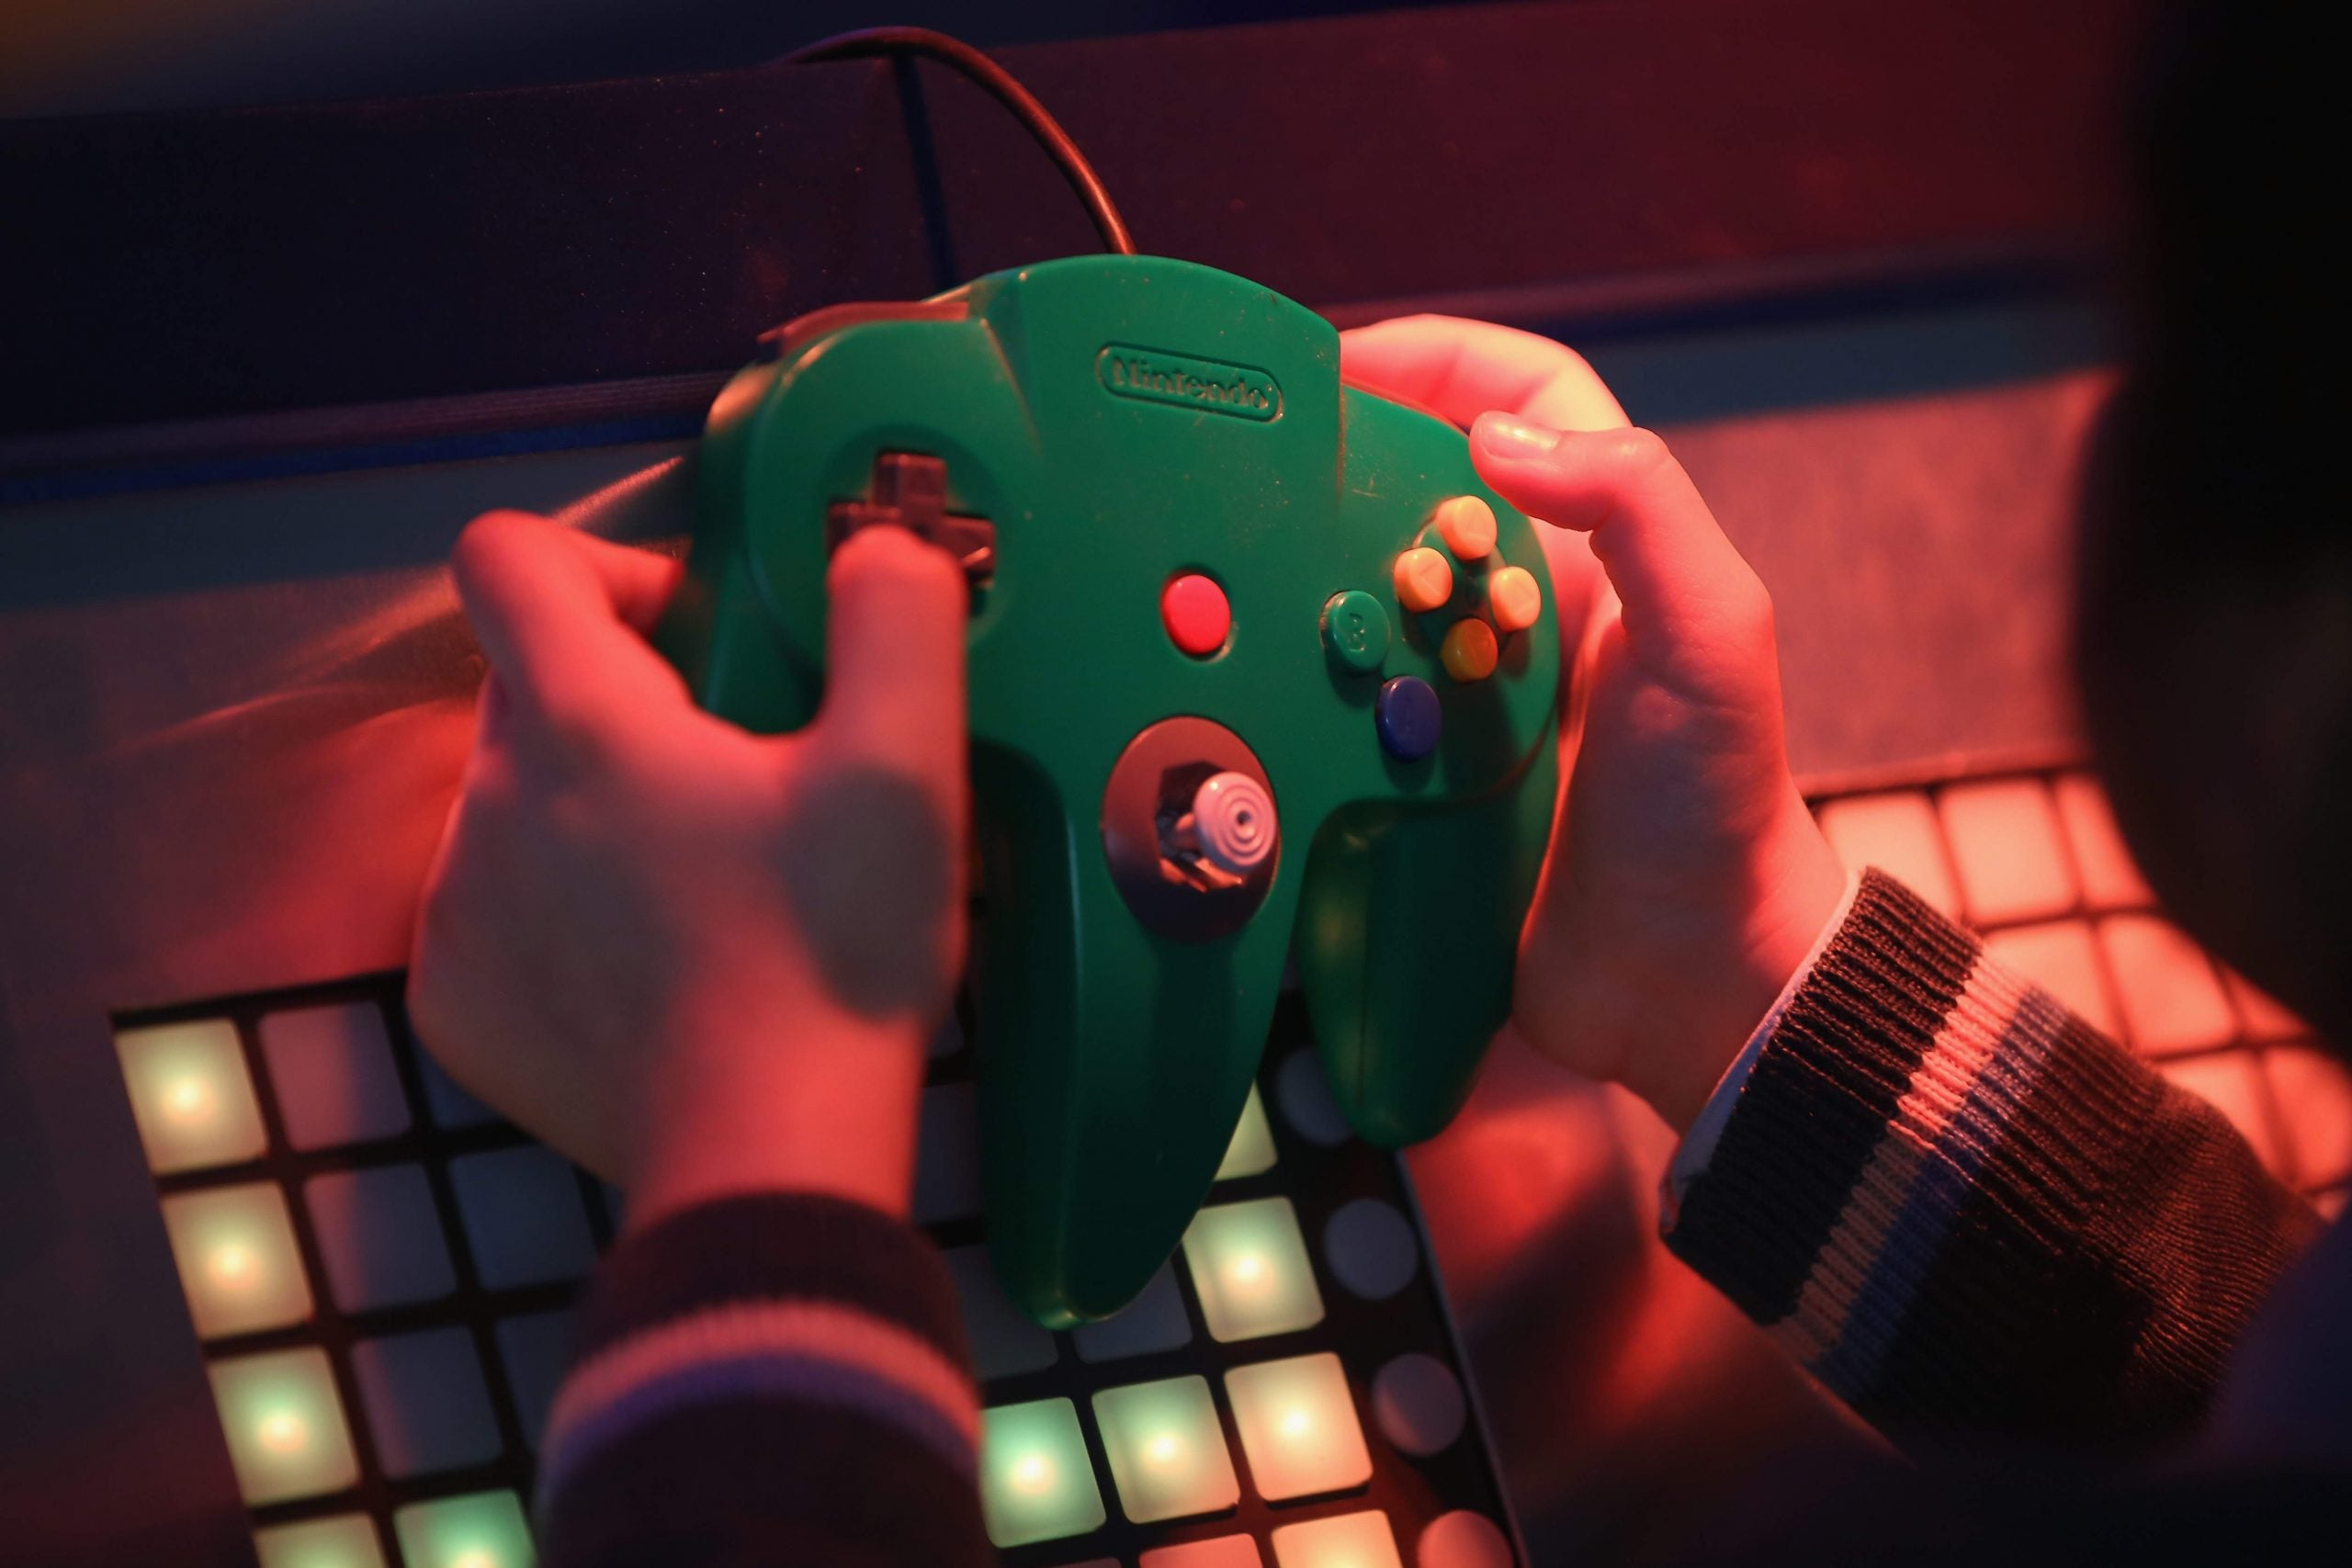 The cultural importance of the video game arcade